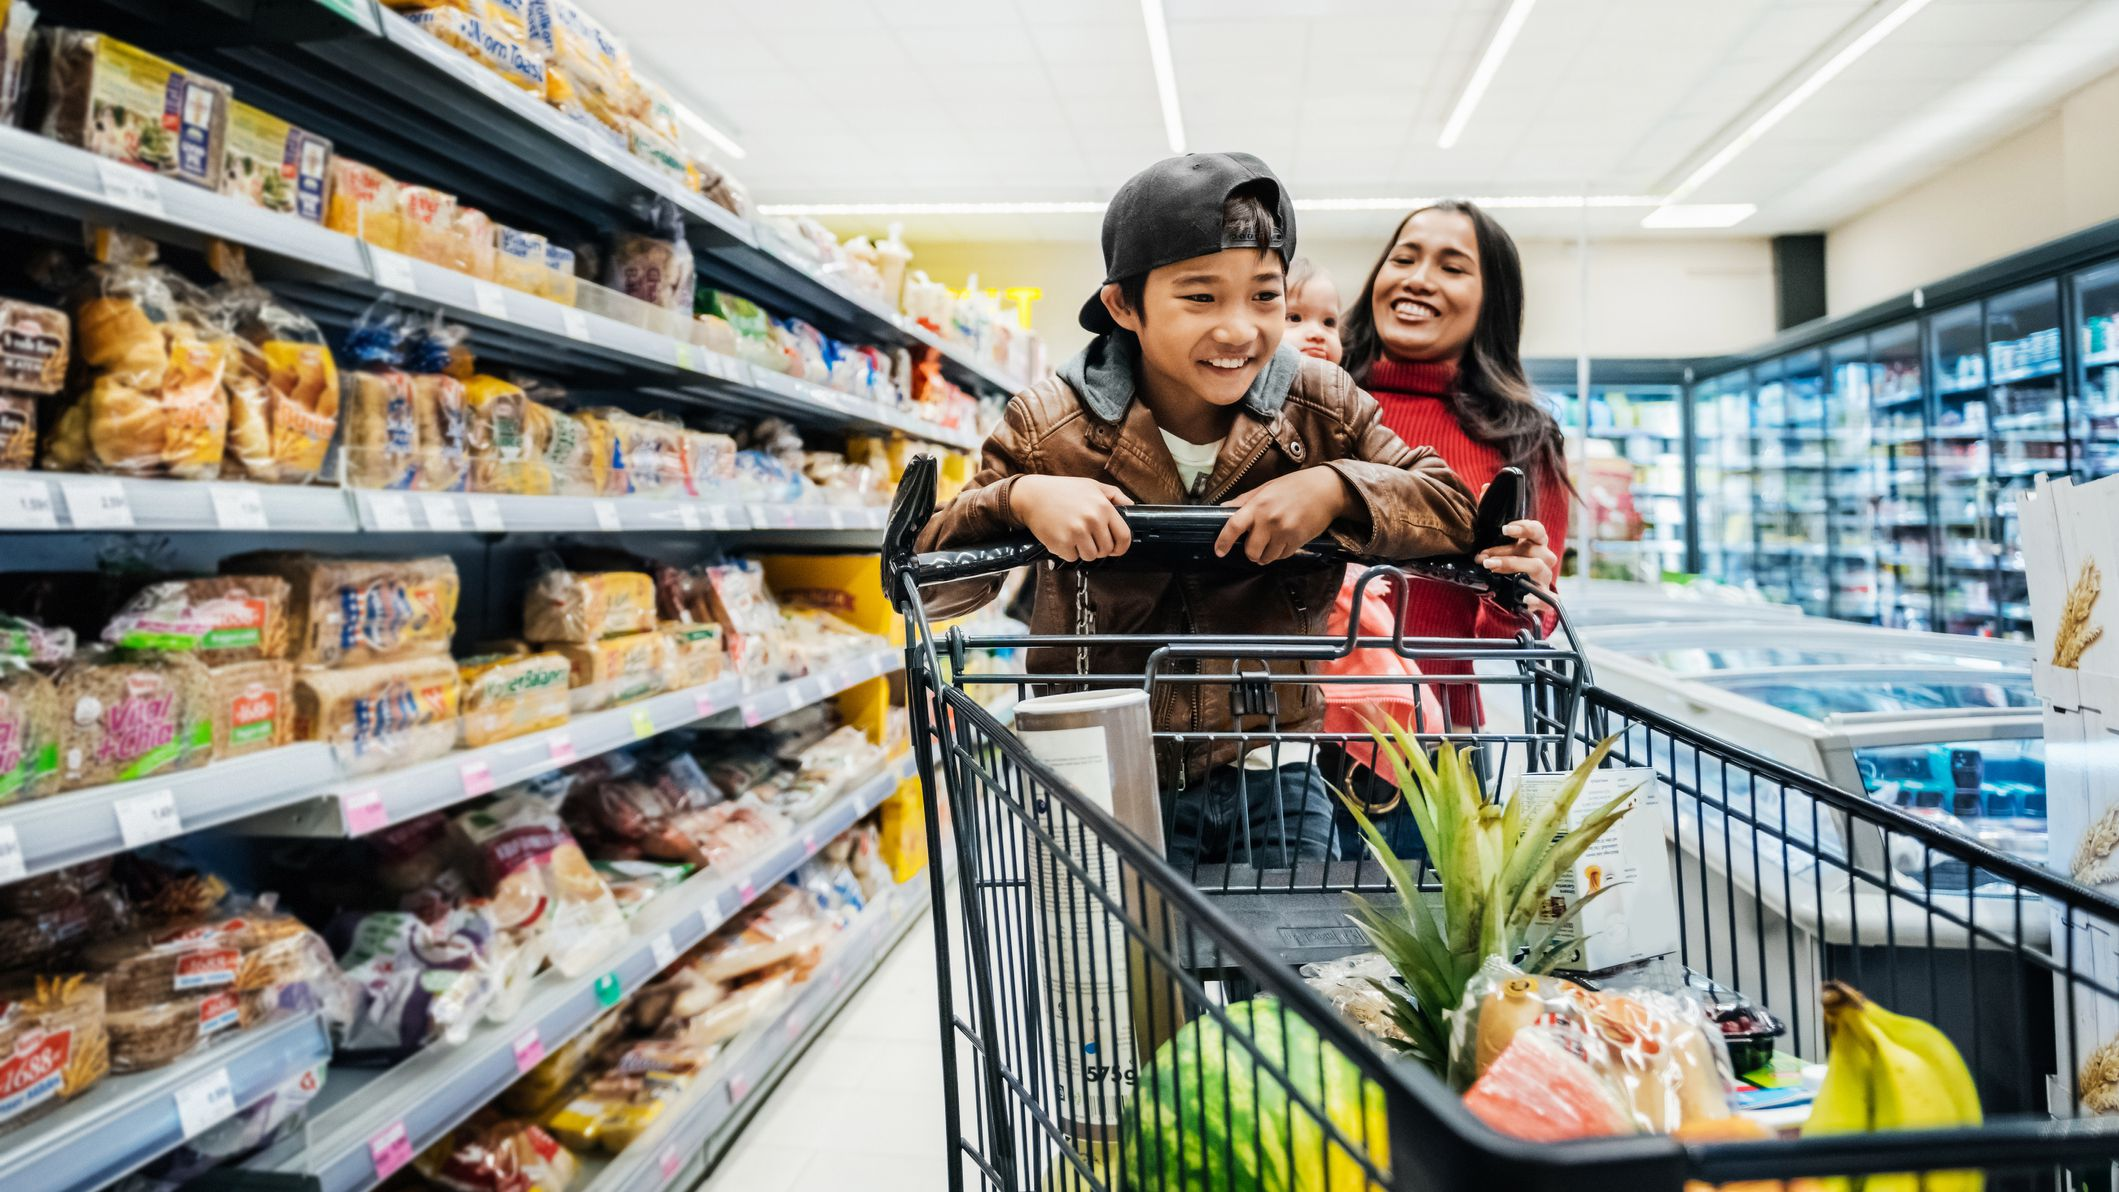 Reasons to shop from Good fortune supermarket